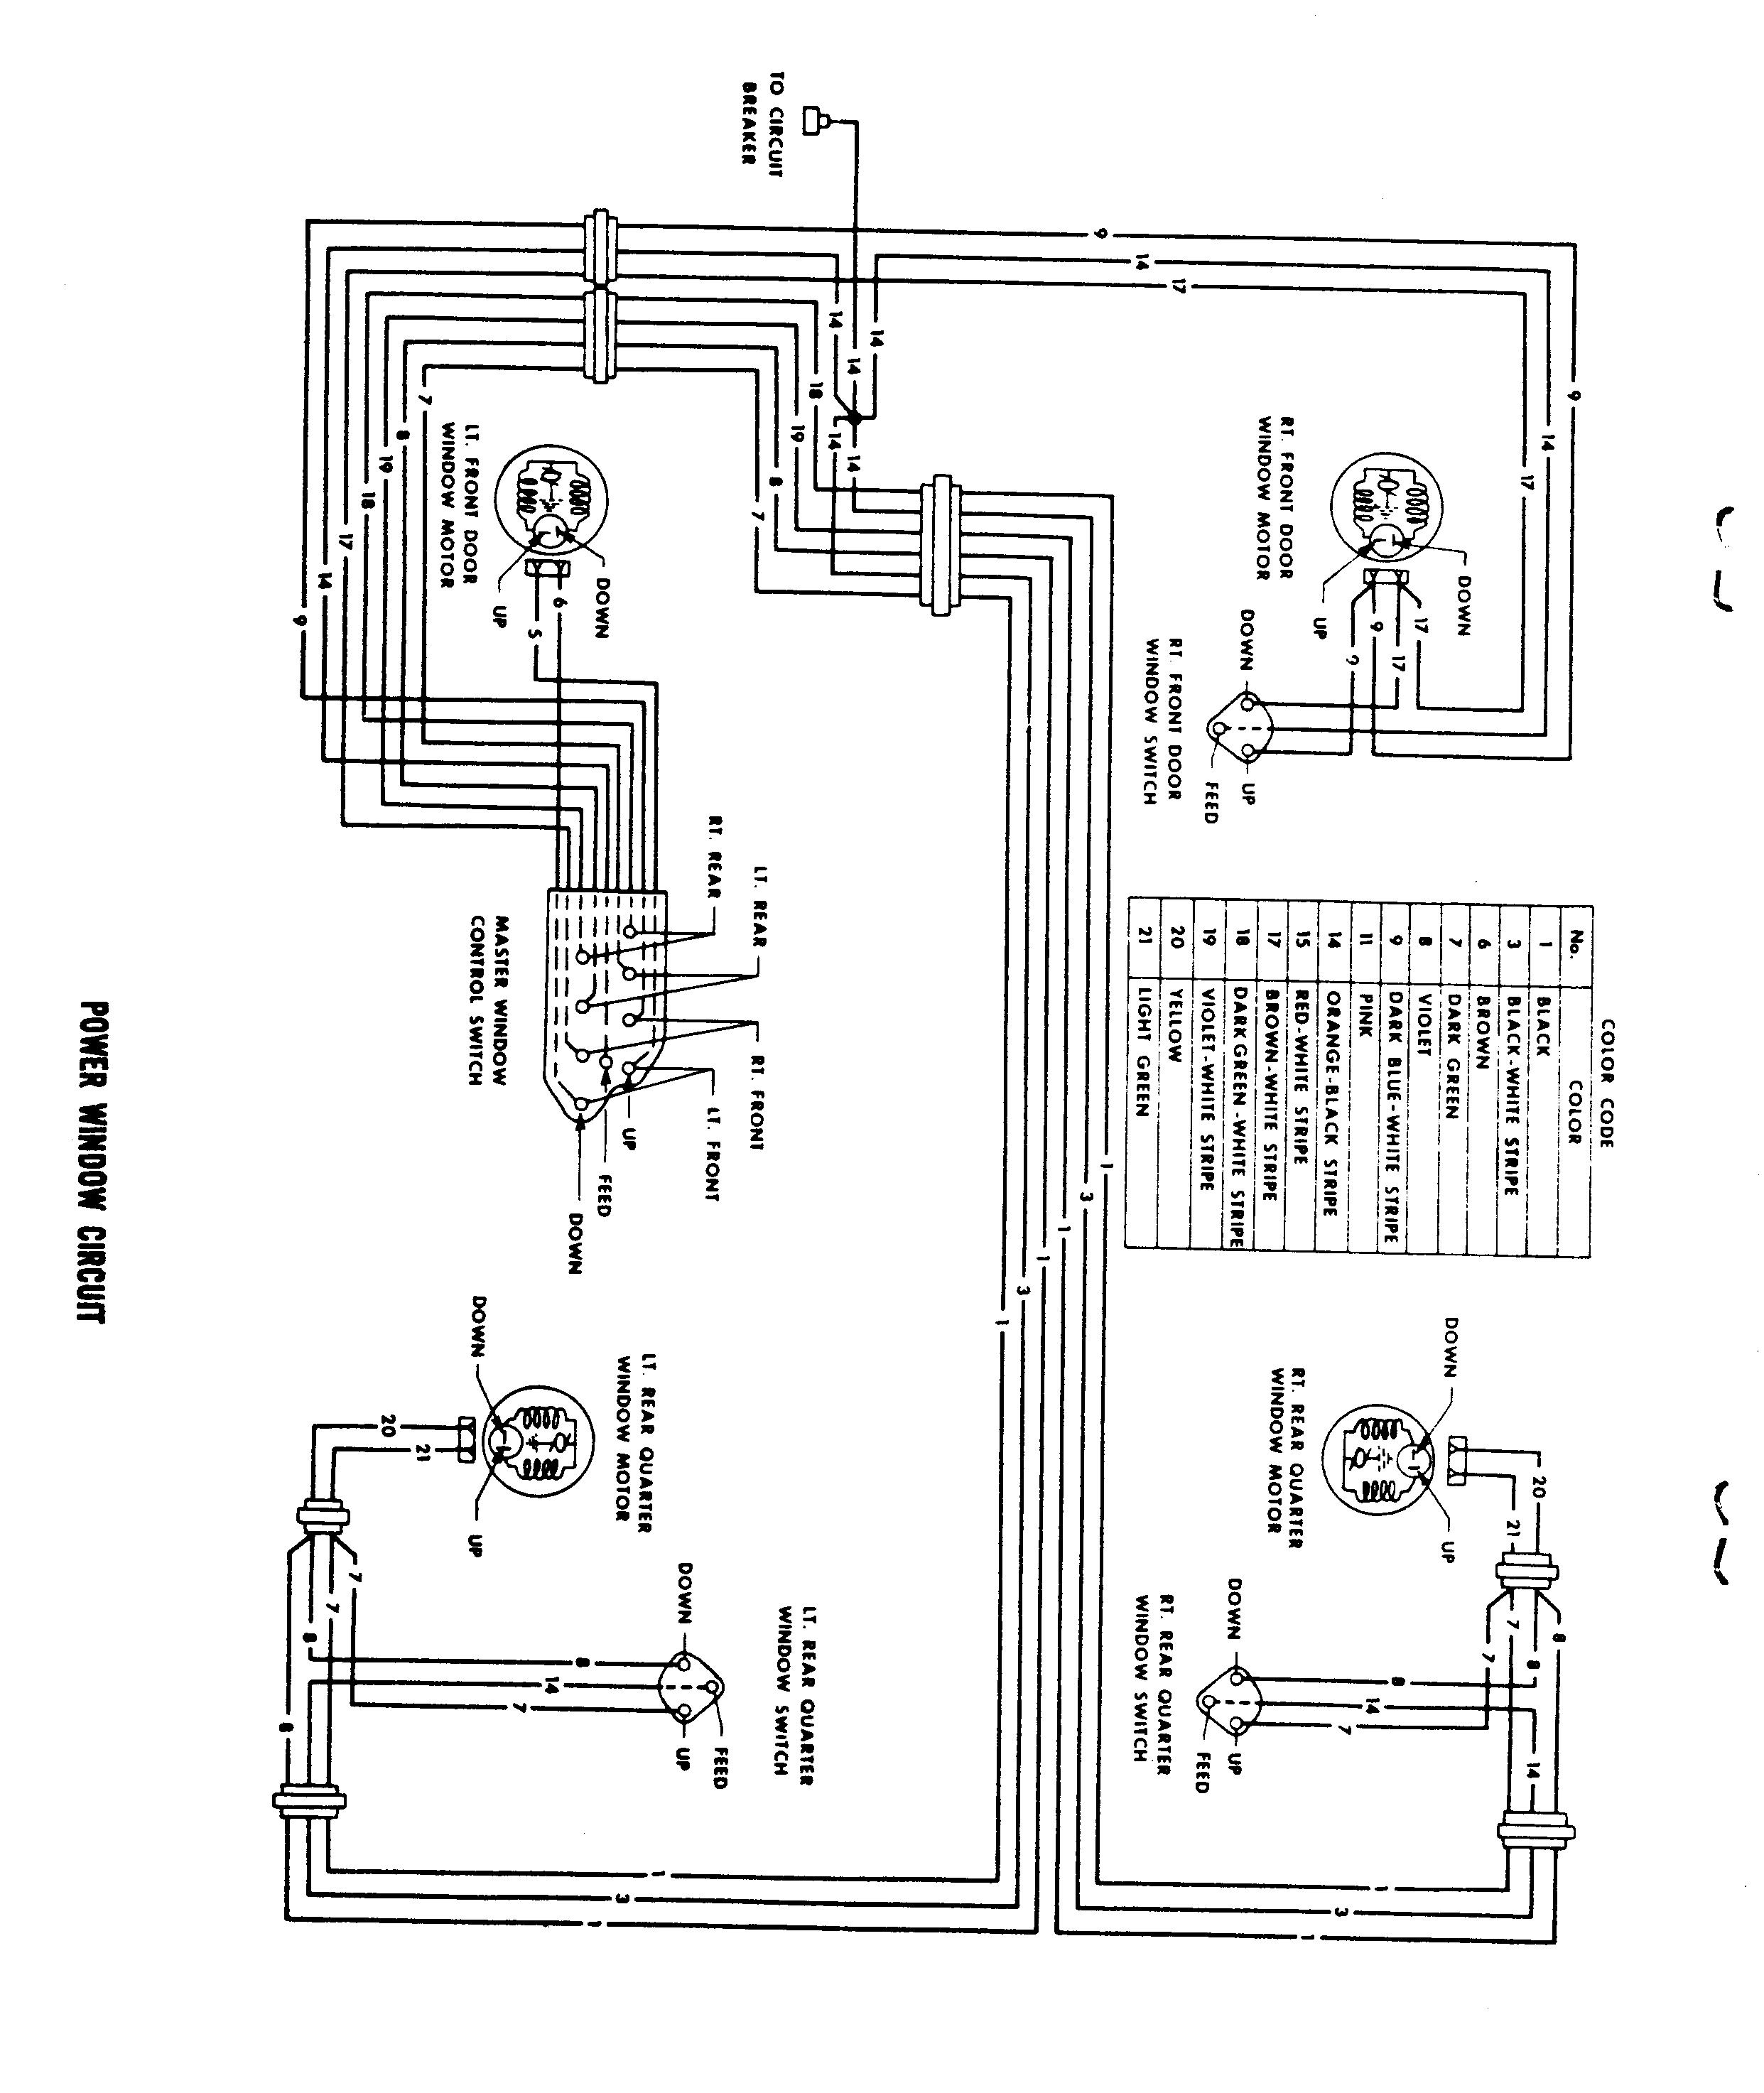 Gto Wiring Diagram Scans Pontiac Gto Forum